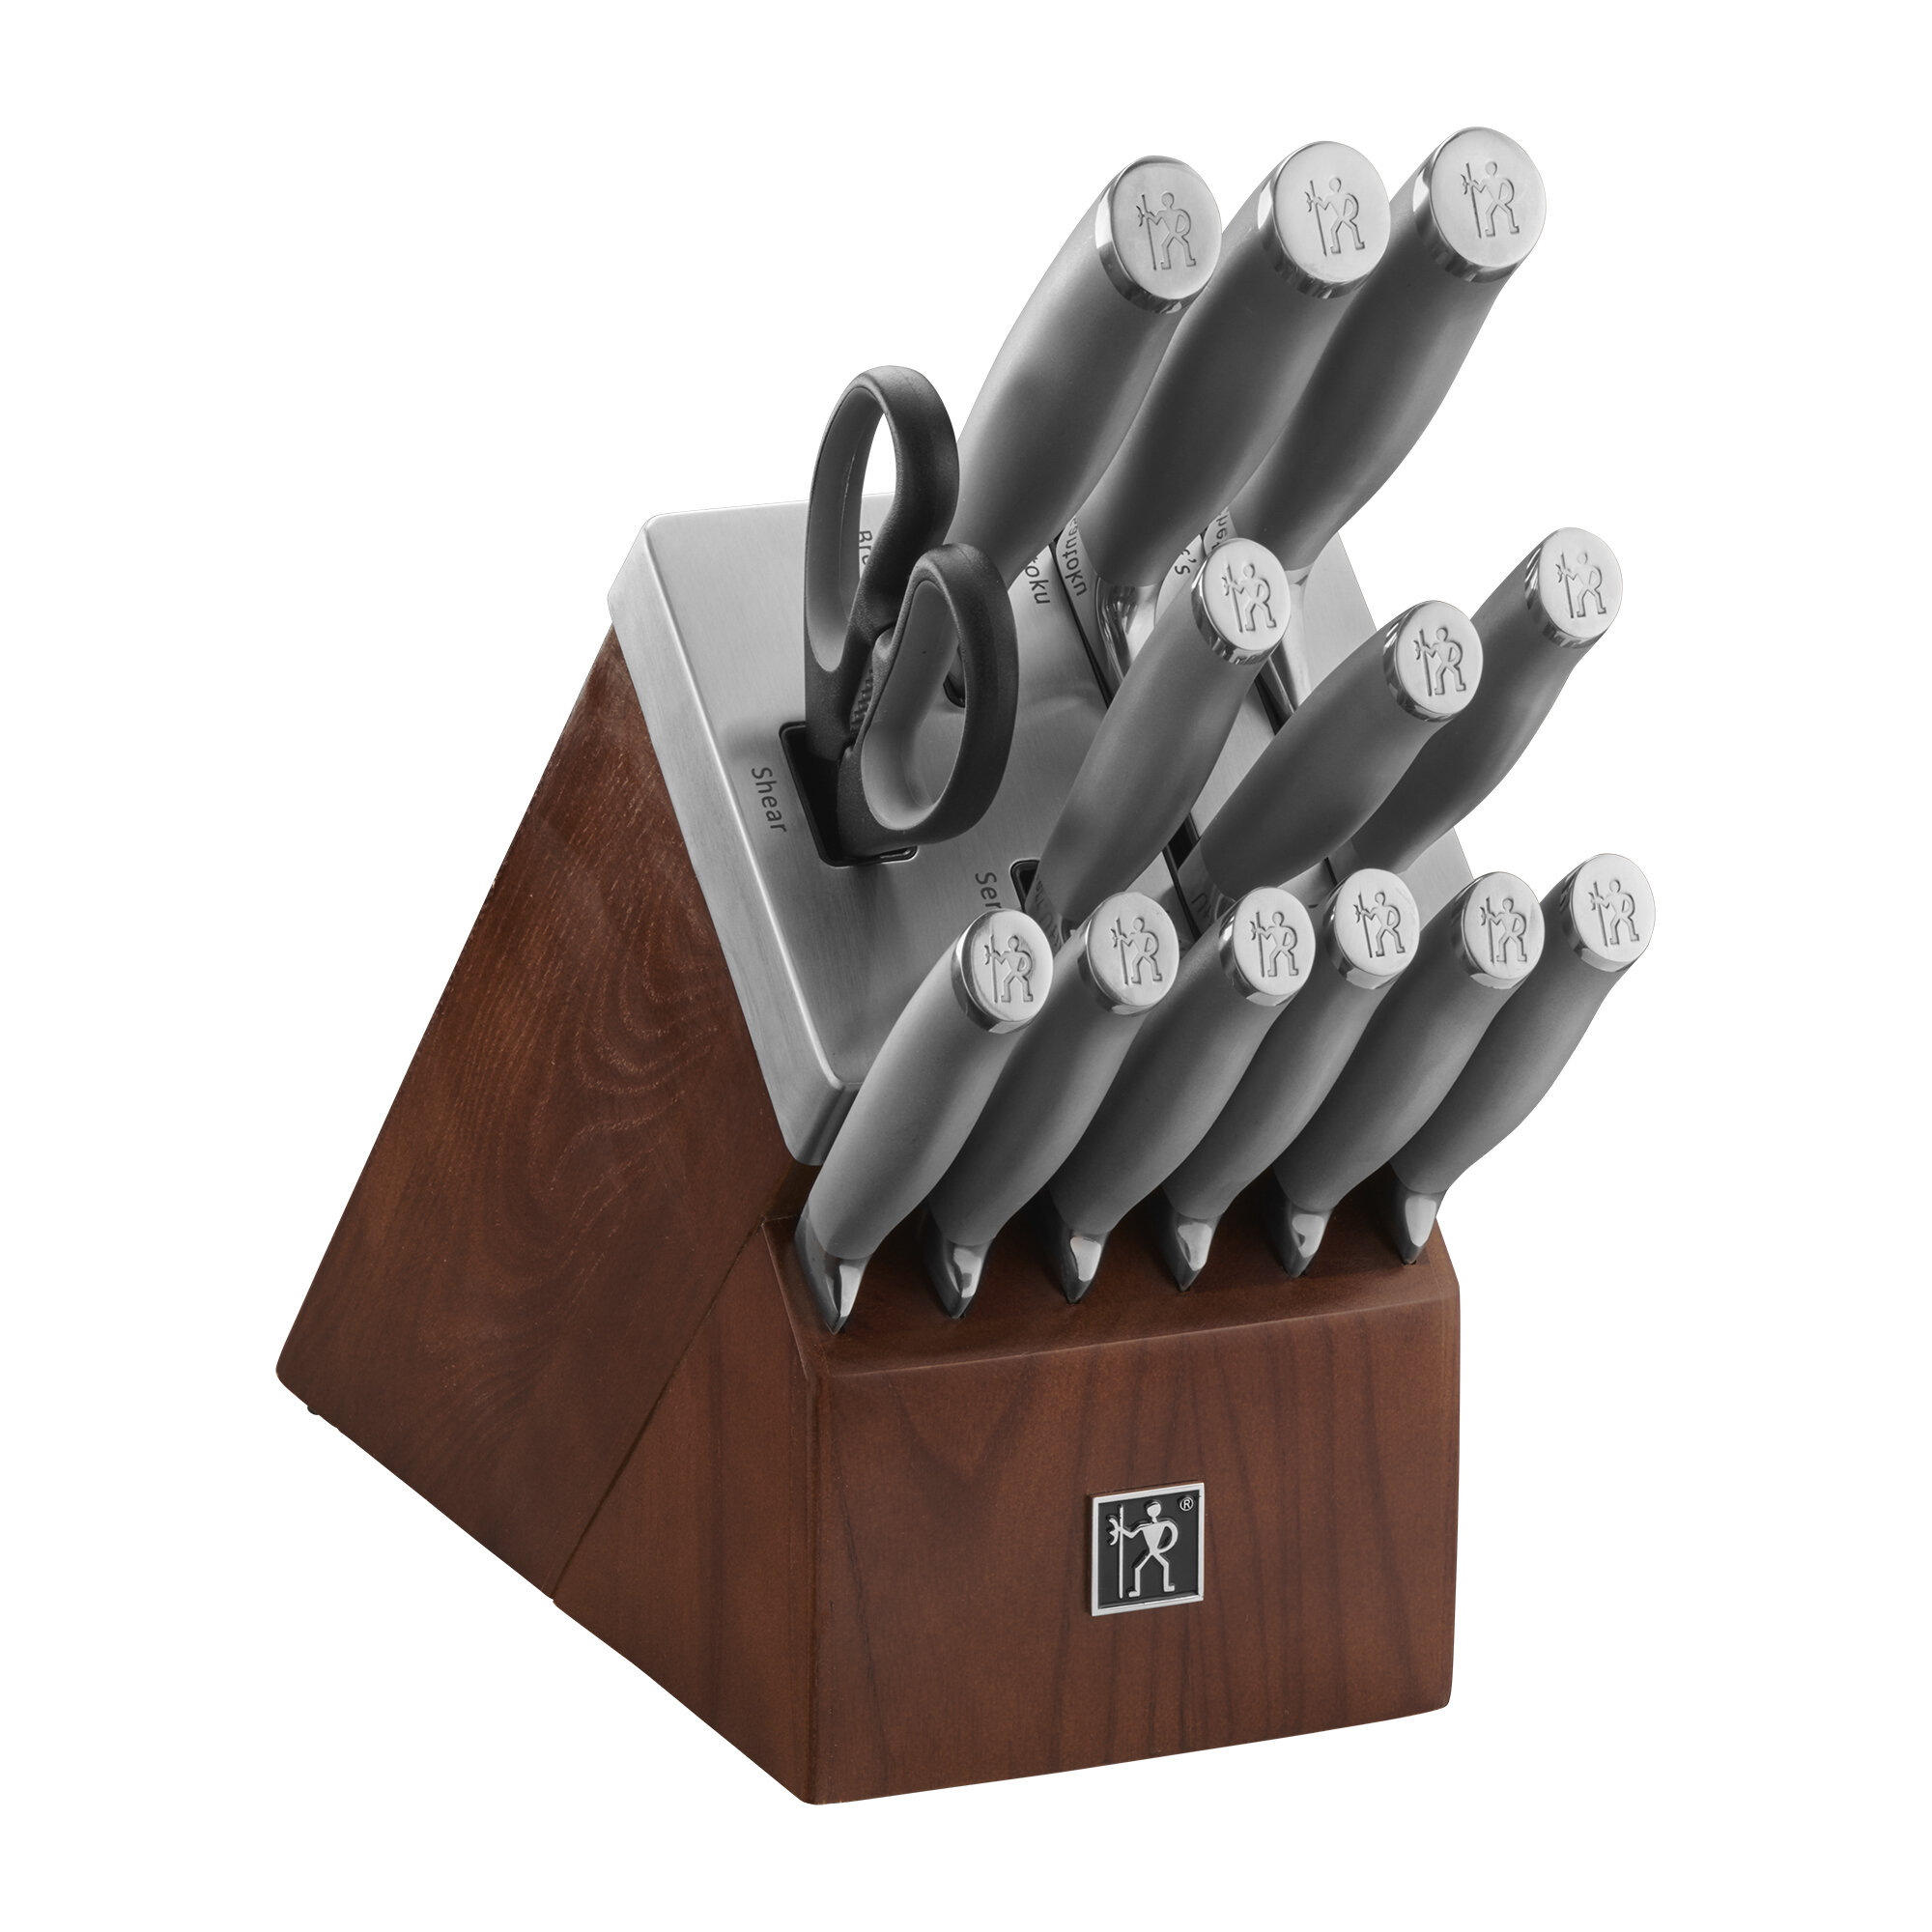 Henckels Modernist 14 Piece Knife Block Set Reviews Wayfair